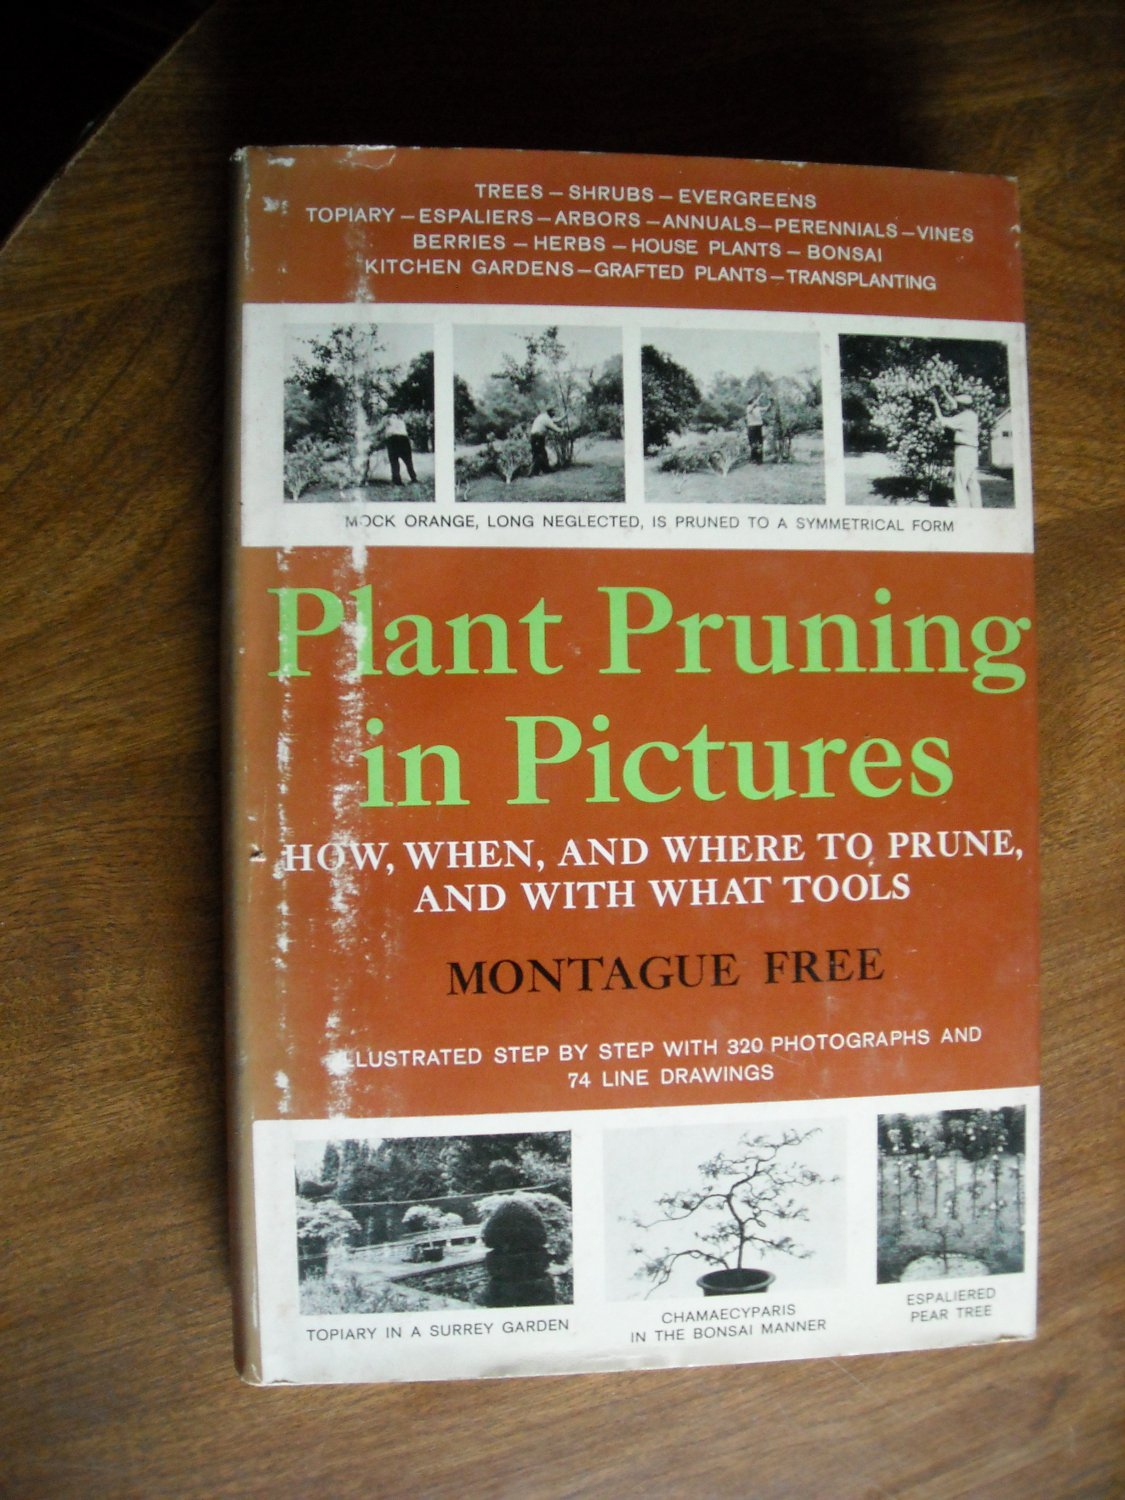 Plant Pruning in Pictures How, When, and Where to Prune by Montague Free (1961) (BB6)